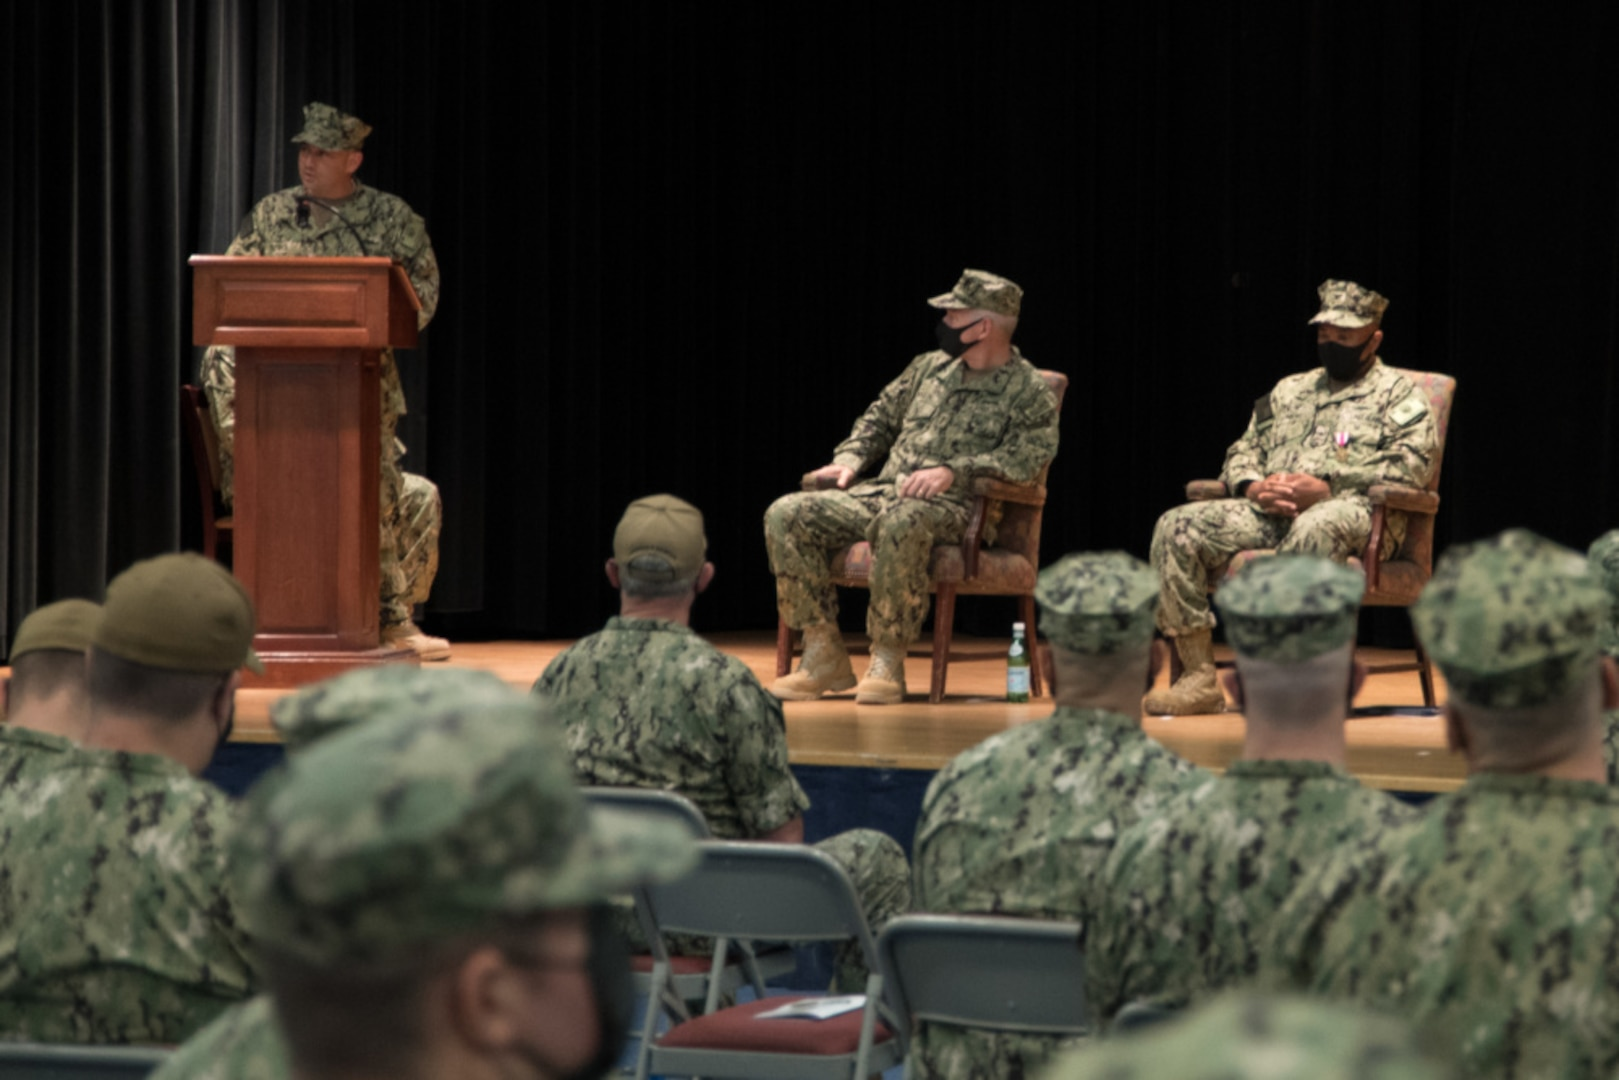 NAVAL SUPPORT ACTIVITY BAHRAIN (June 16, 2021) Capt. Benjamin Berg, incoming commander of Patrol Forces Southwest Asia (PATFORSWA) gives remarks during a change of command ceremony onboard Naval Support Activity Bahrain, June 16. PATFORSWA is the Coast Guard's largest unit outside of the U.S. playing a key role in supporting Navy security cooperation, maritime security, and maritime infrastructure protection operations in the U.S. 5th Fleet area of operations. (U.S. Navy photo by Mass Communication Specialist 2nd Class Matthew Riggs)